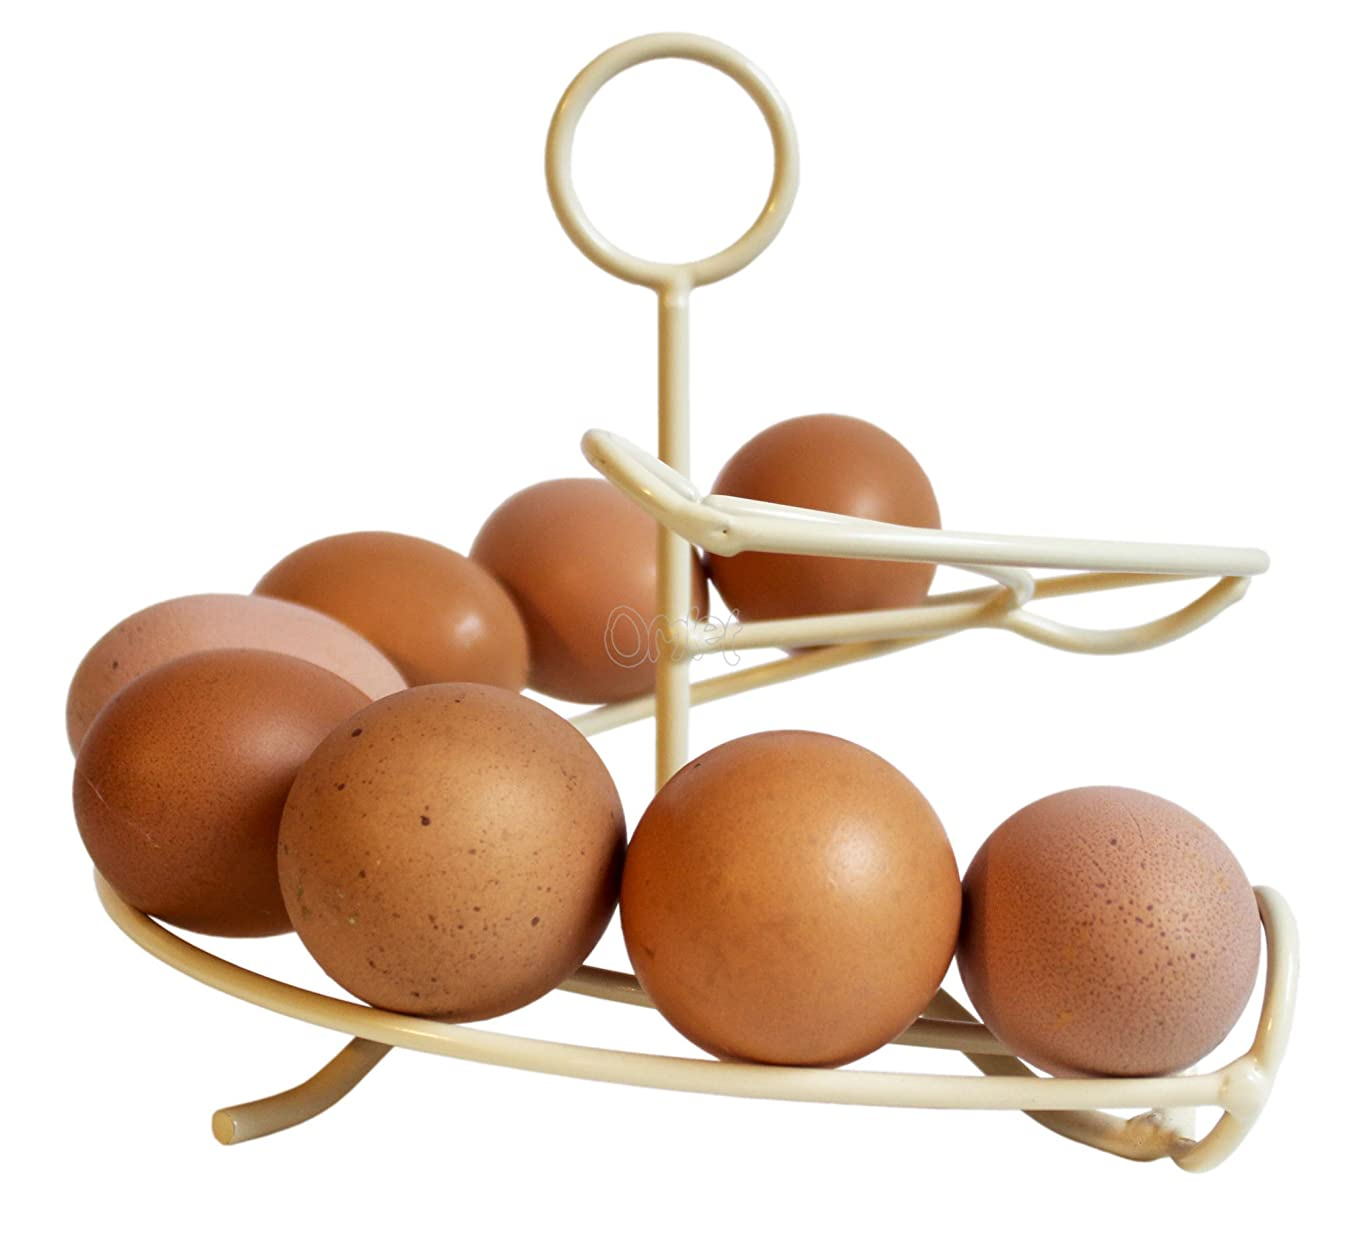 Mini Egg Skelter '12' Egg Storage Rack - Holds 12 Eggs - in Cream